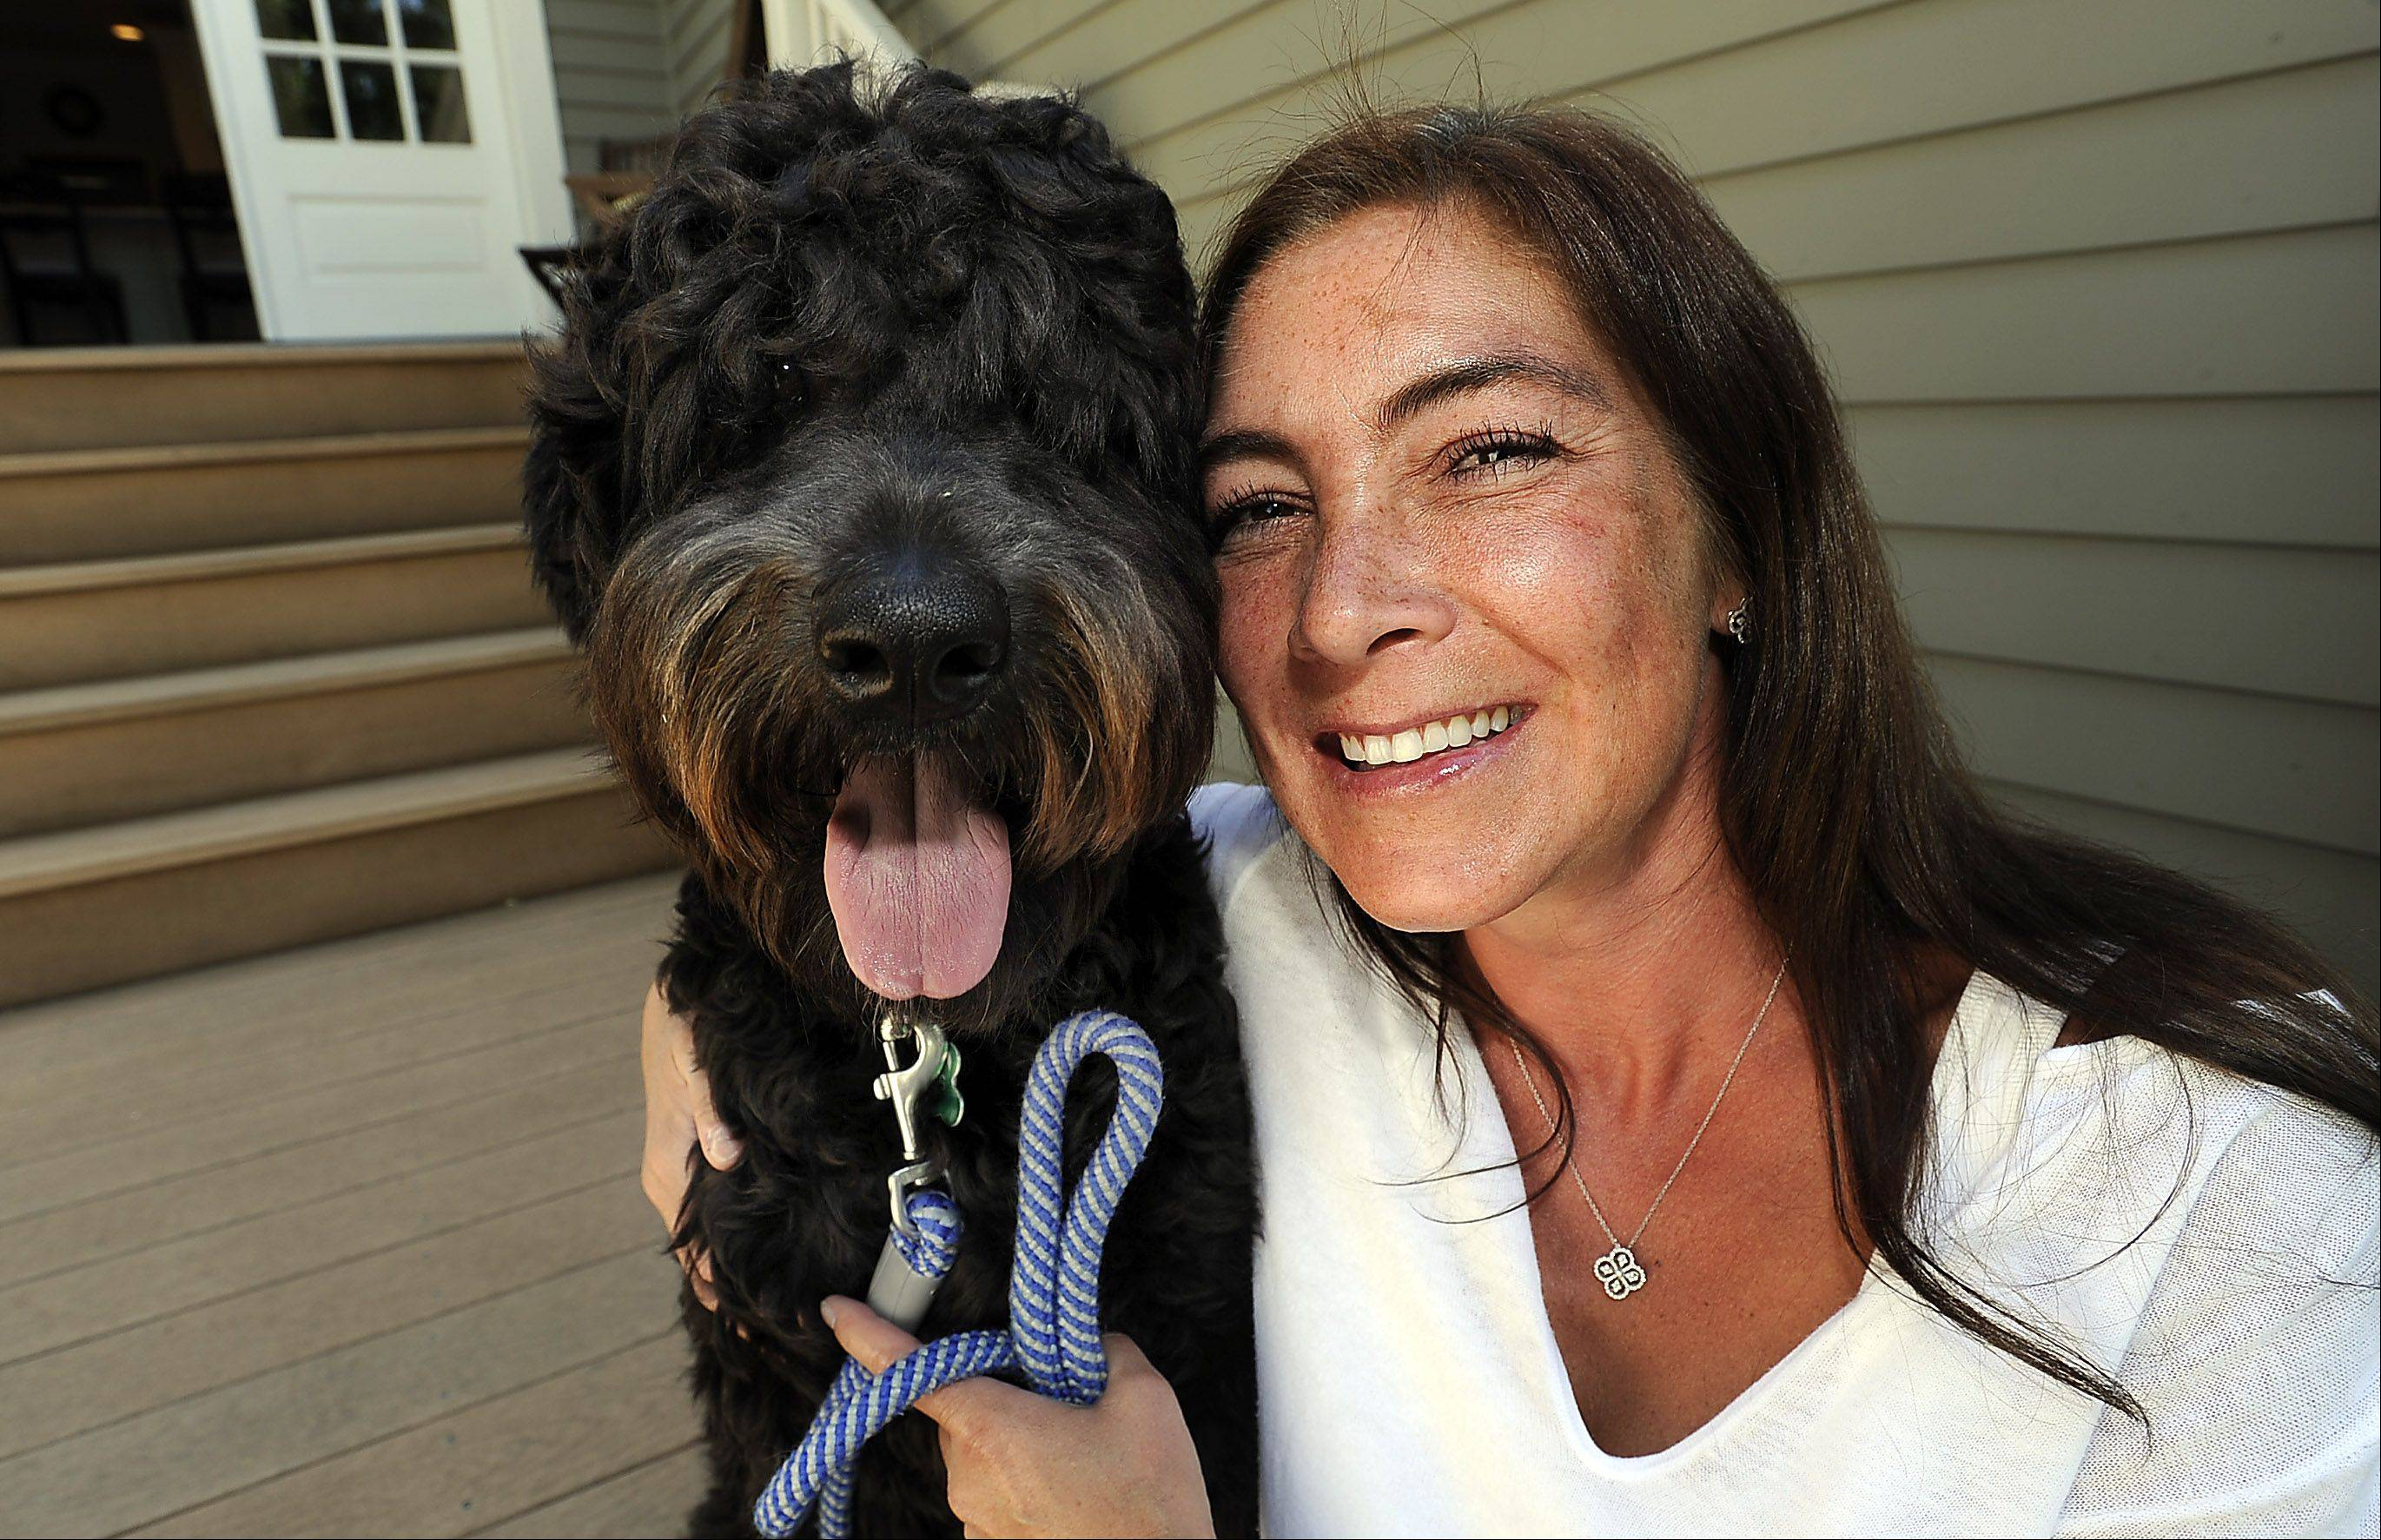 Barrington's Megan Wiersma broke her tooth when her dog, Moses, pulled on his leash, causing her to fall face-first to the ground. Moses redeemed himself the next day when he retrieved the broken tooth and dropped it at Wiersma's feet.